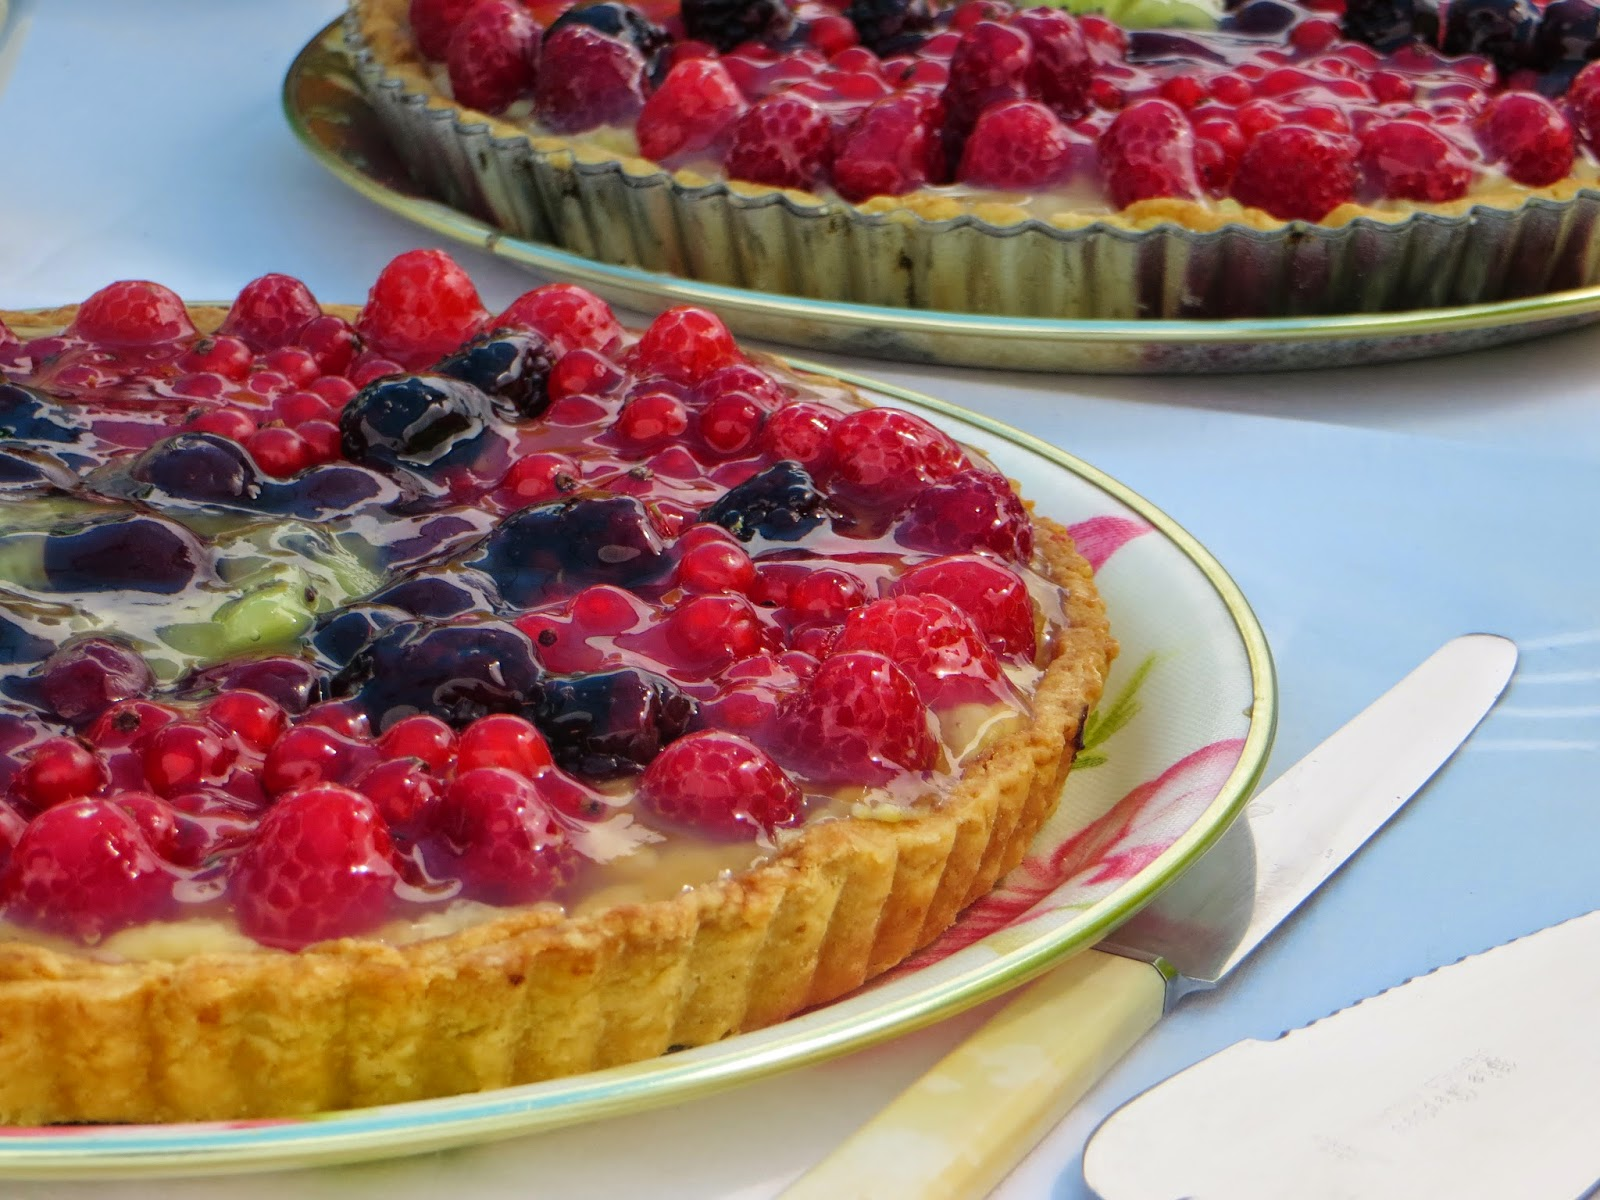 Lovely homemade tarts with homegrown fruit.